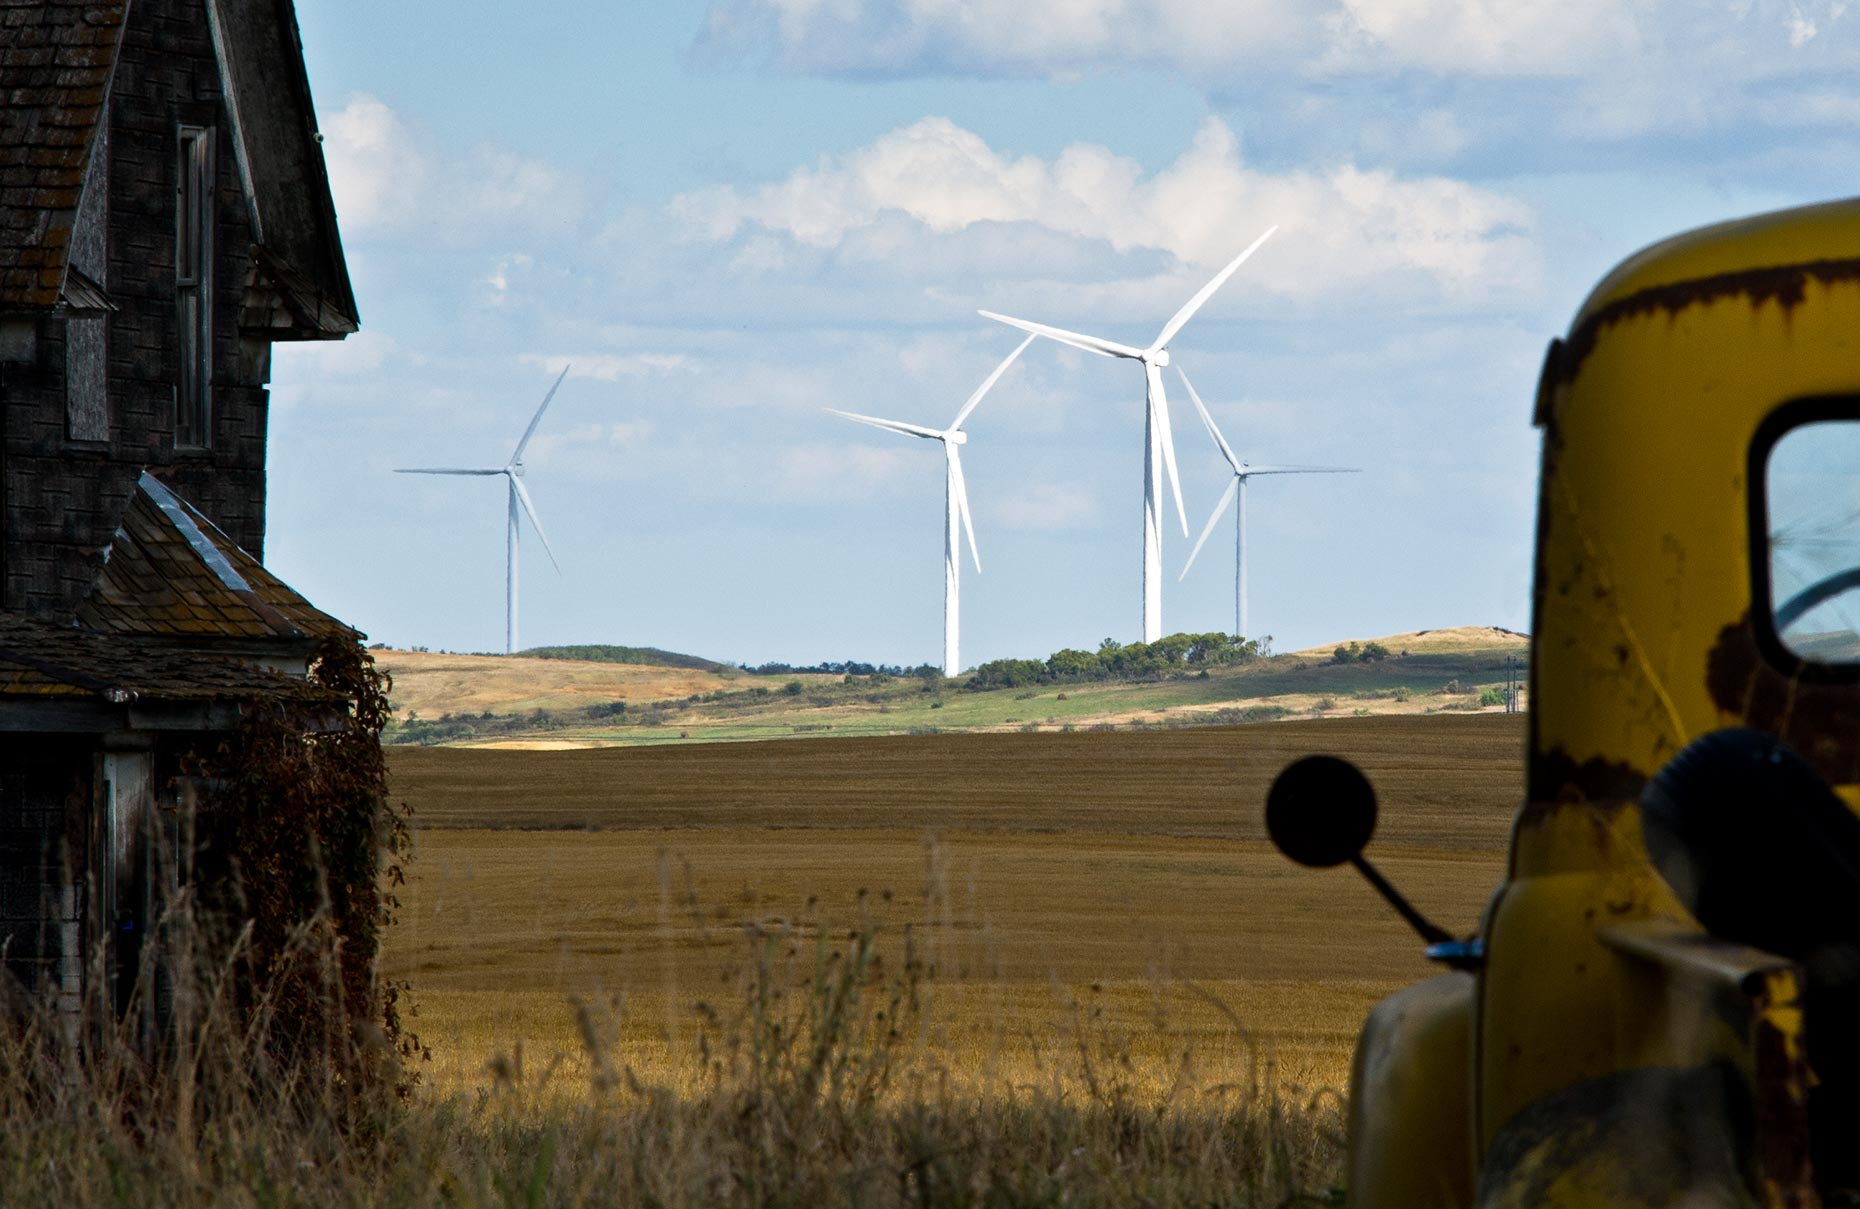 North Dakota wind turbines photographed by Fargo editorial photographer Dan Koeck.